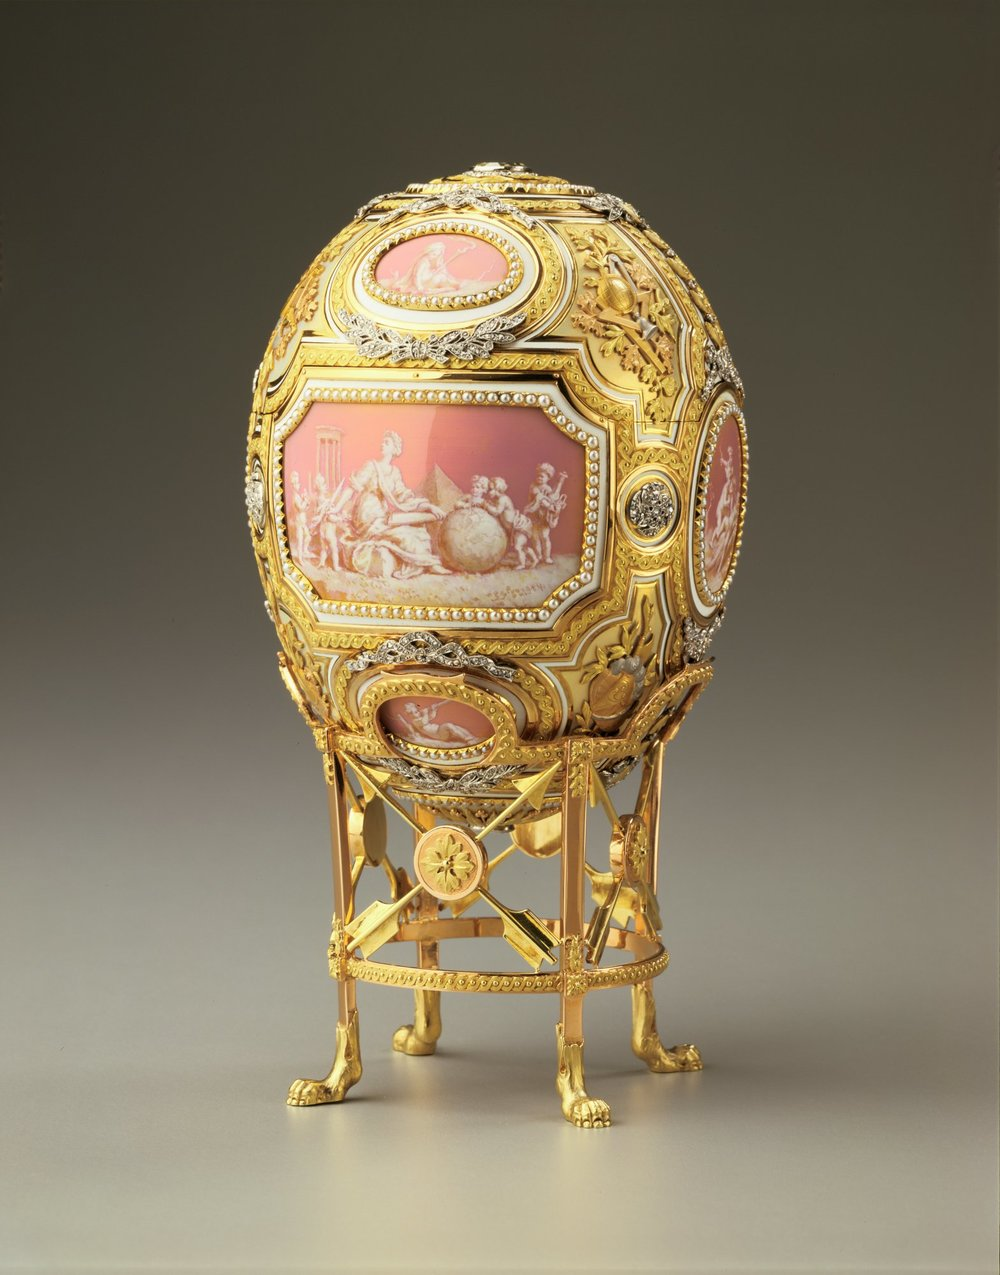 The Catherine the Great Egg also known as 'Grisaille Egg' and 'Pink Cameo' Egg, 1914.